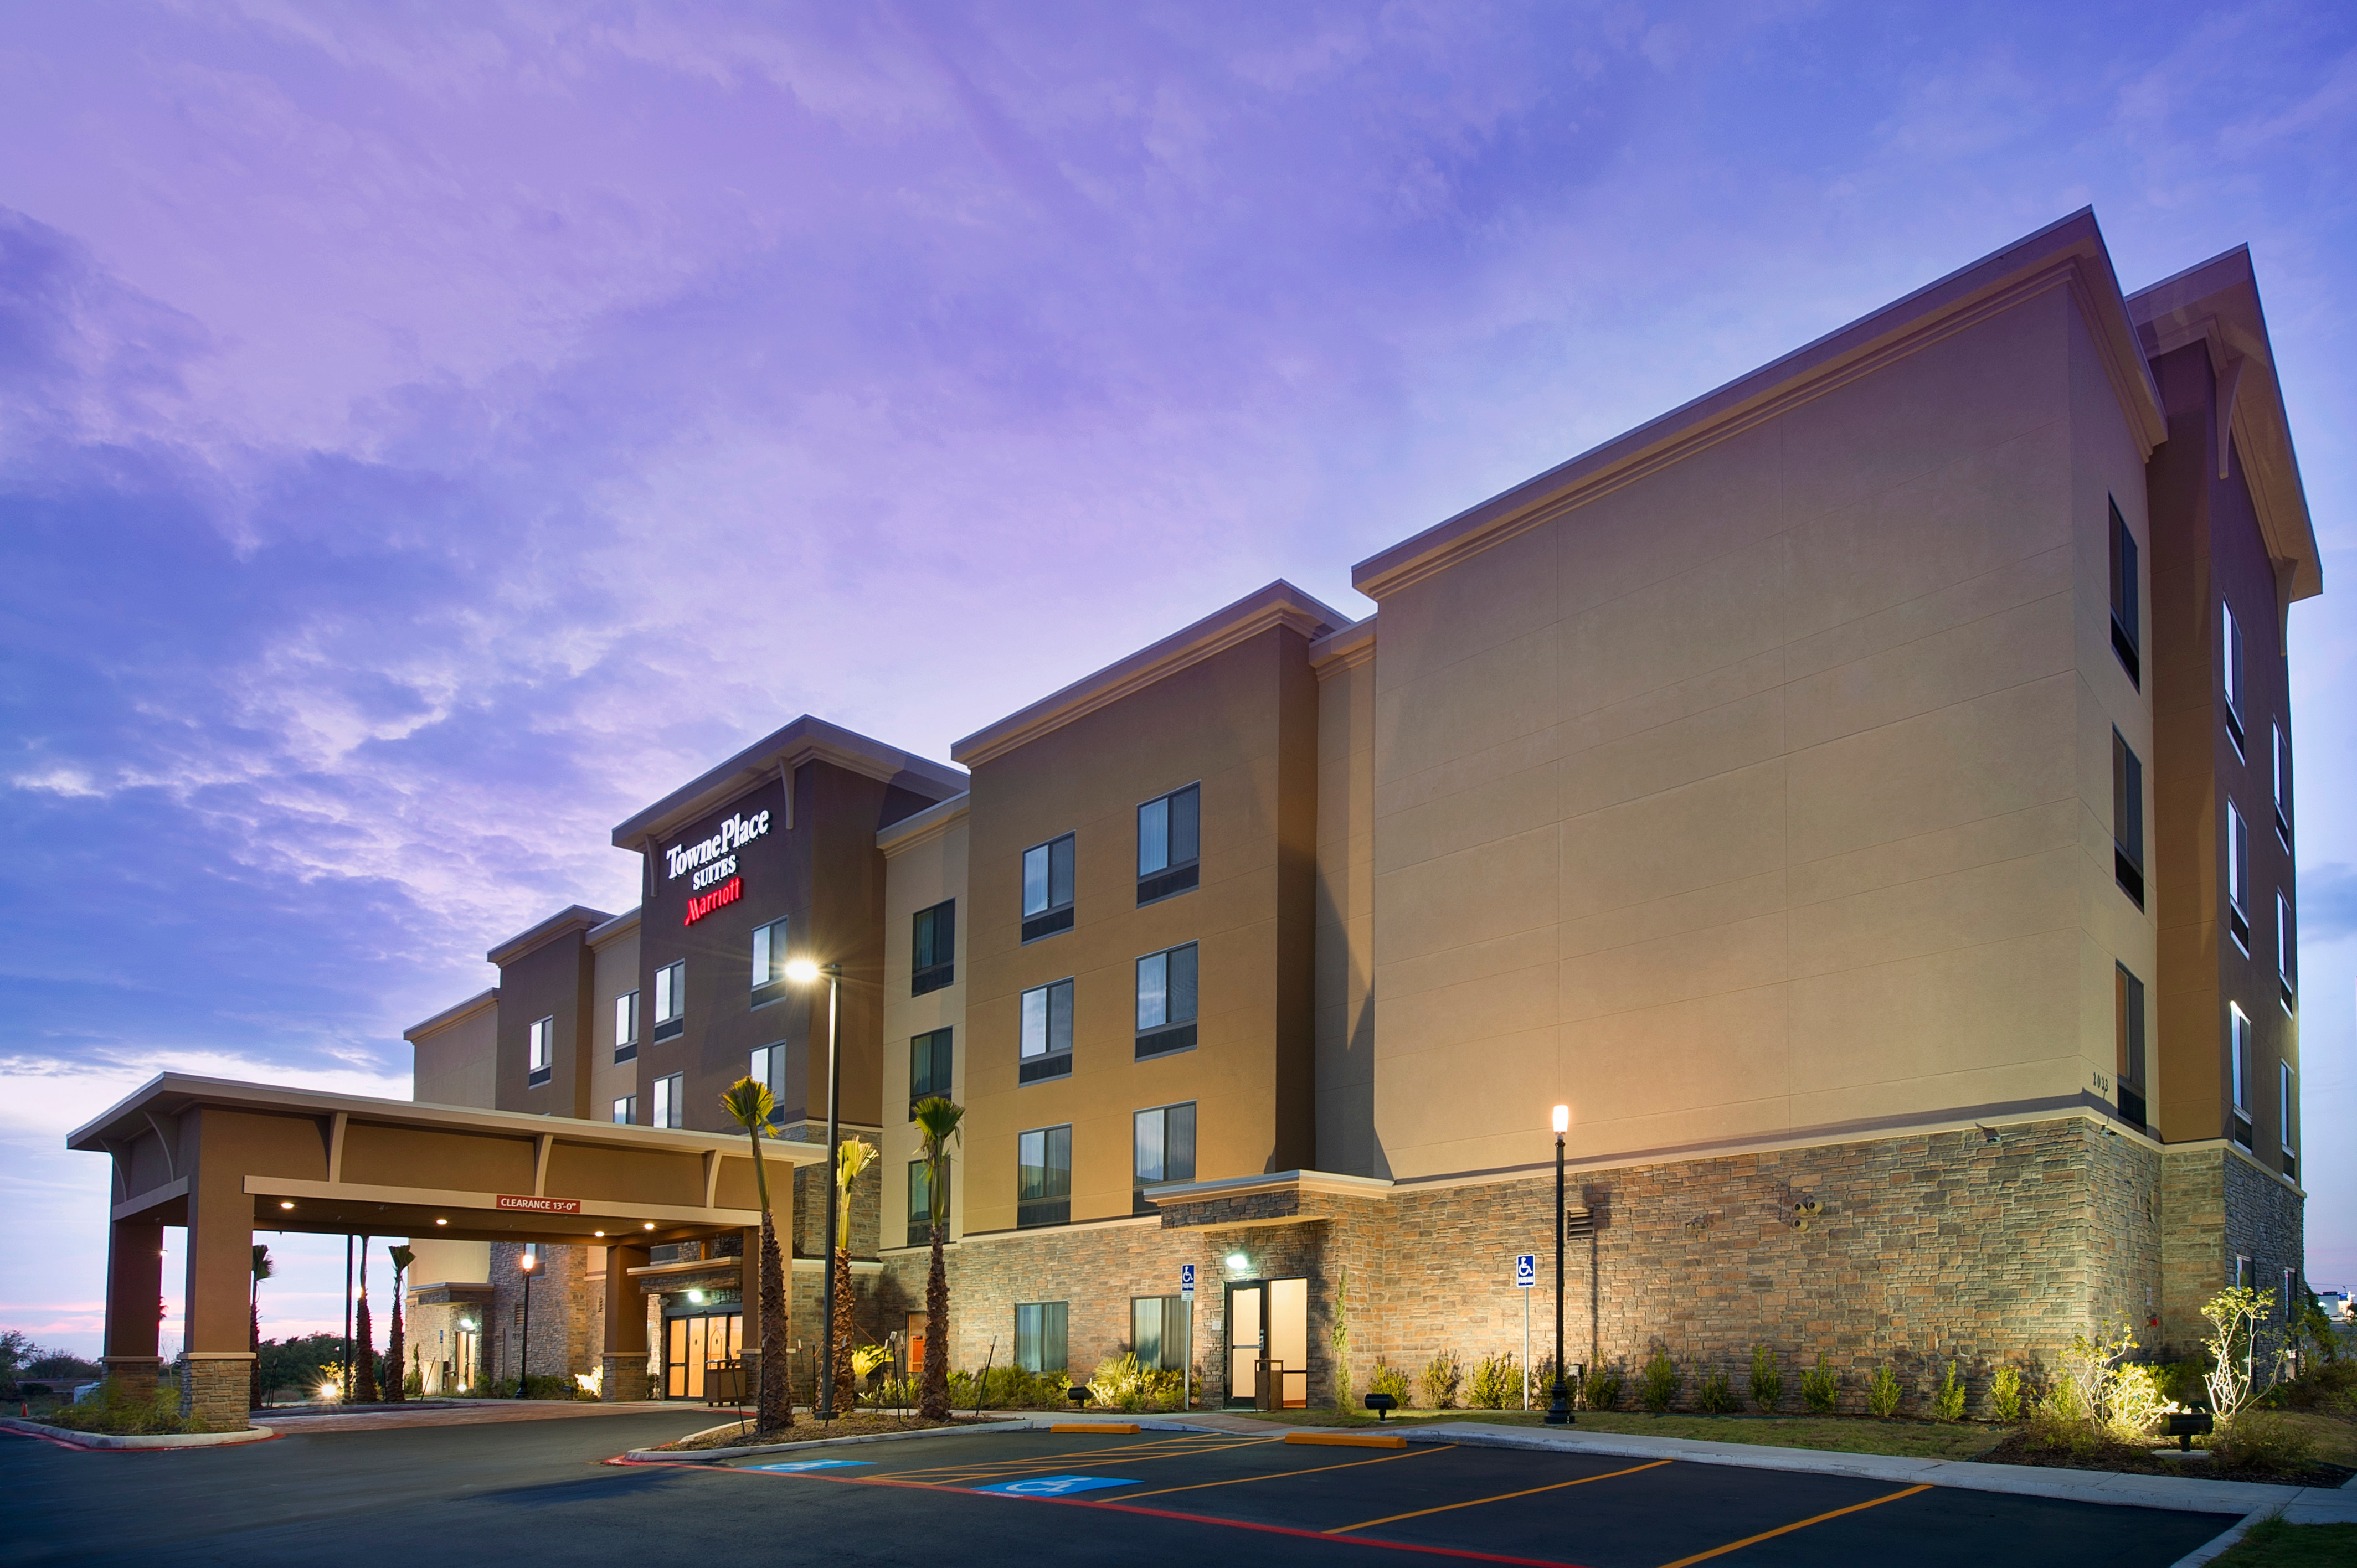 TownePlace Suites by Marriott Eagle Pass image 1